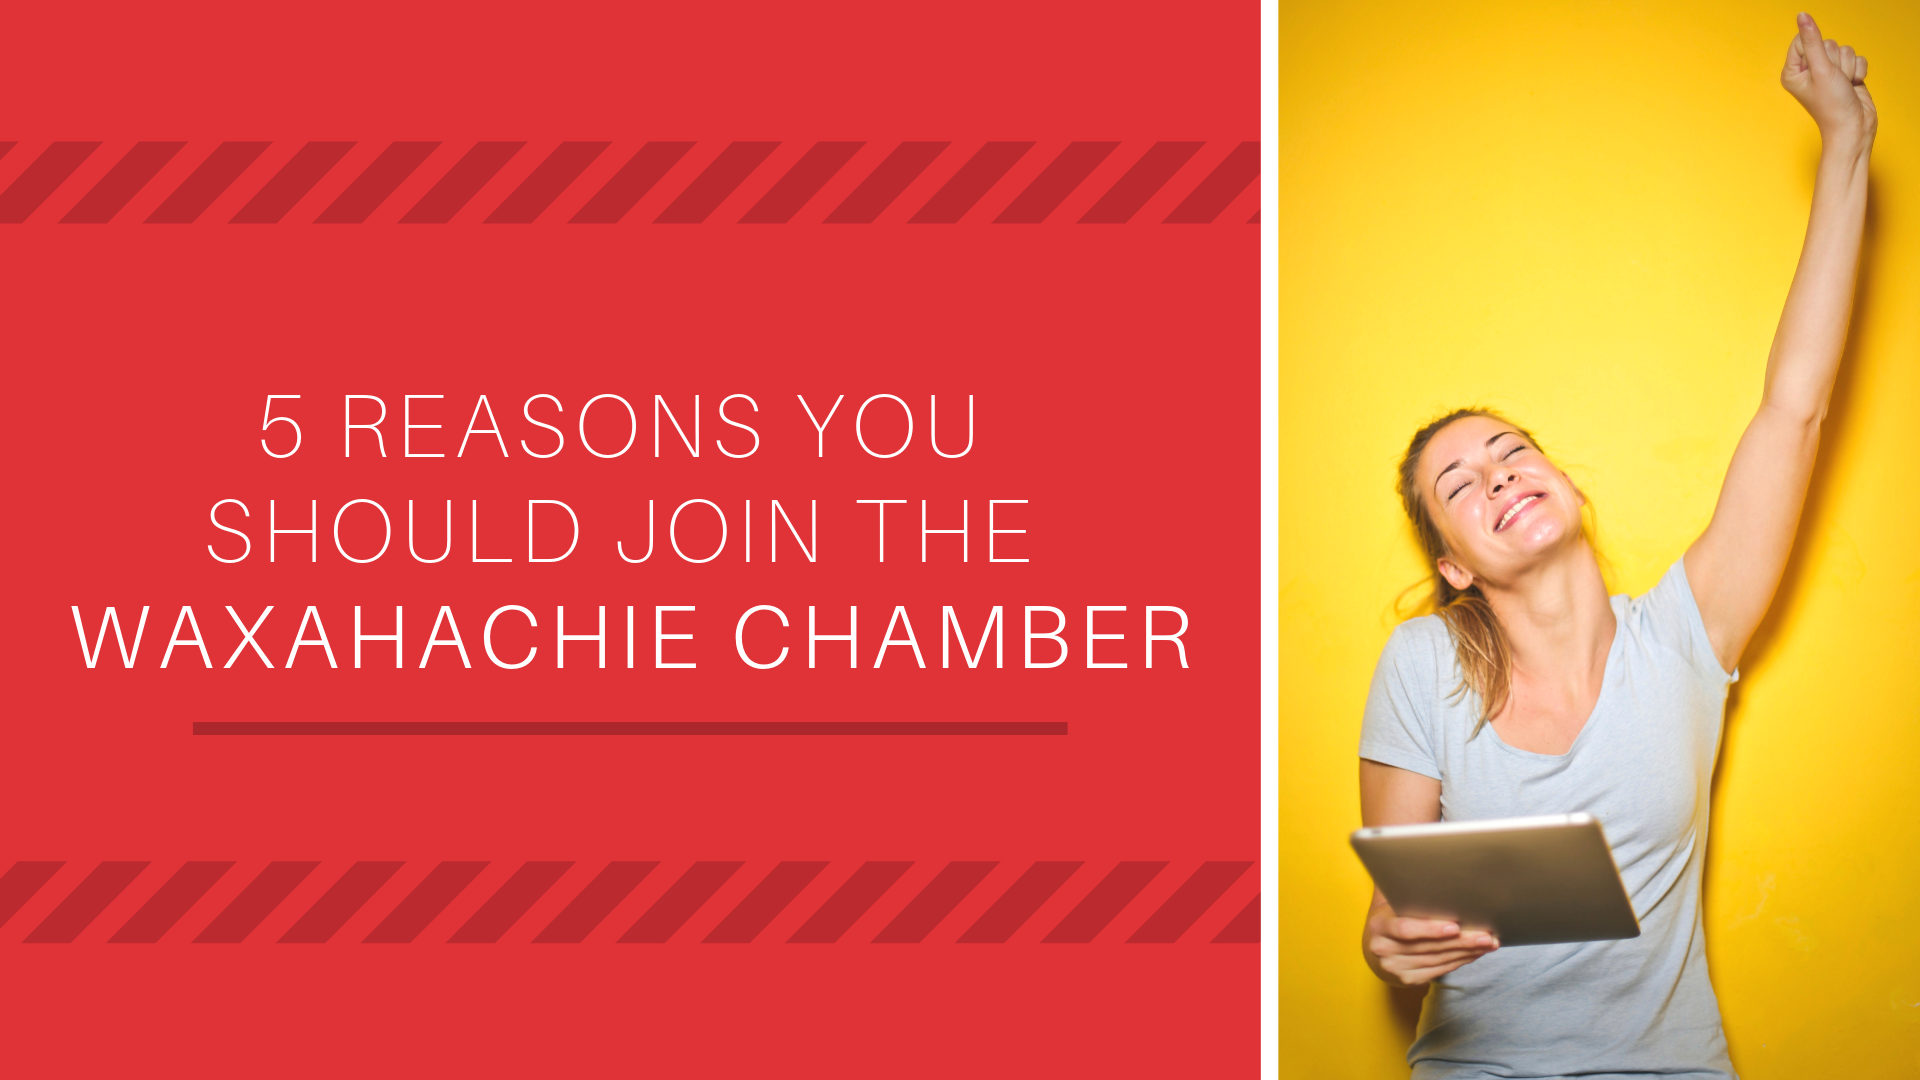 5 Reasons you should join the Waxahachie Chamber